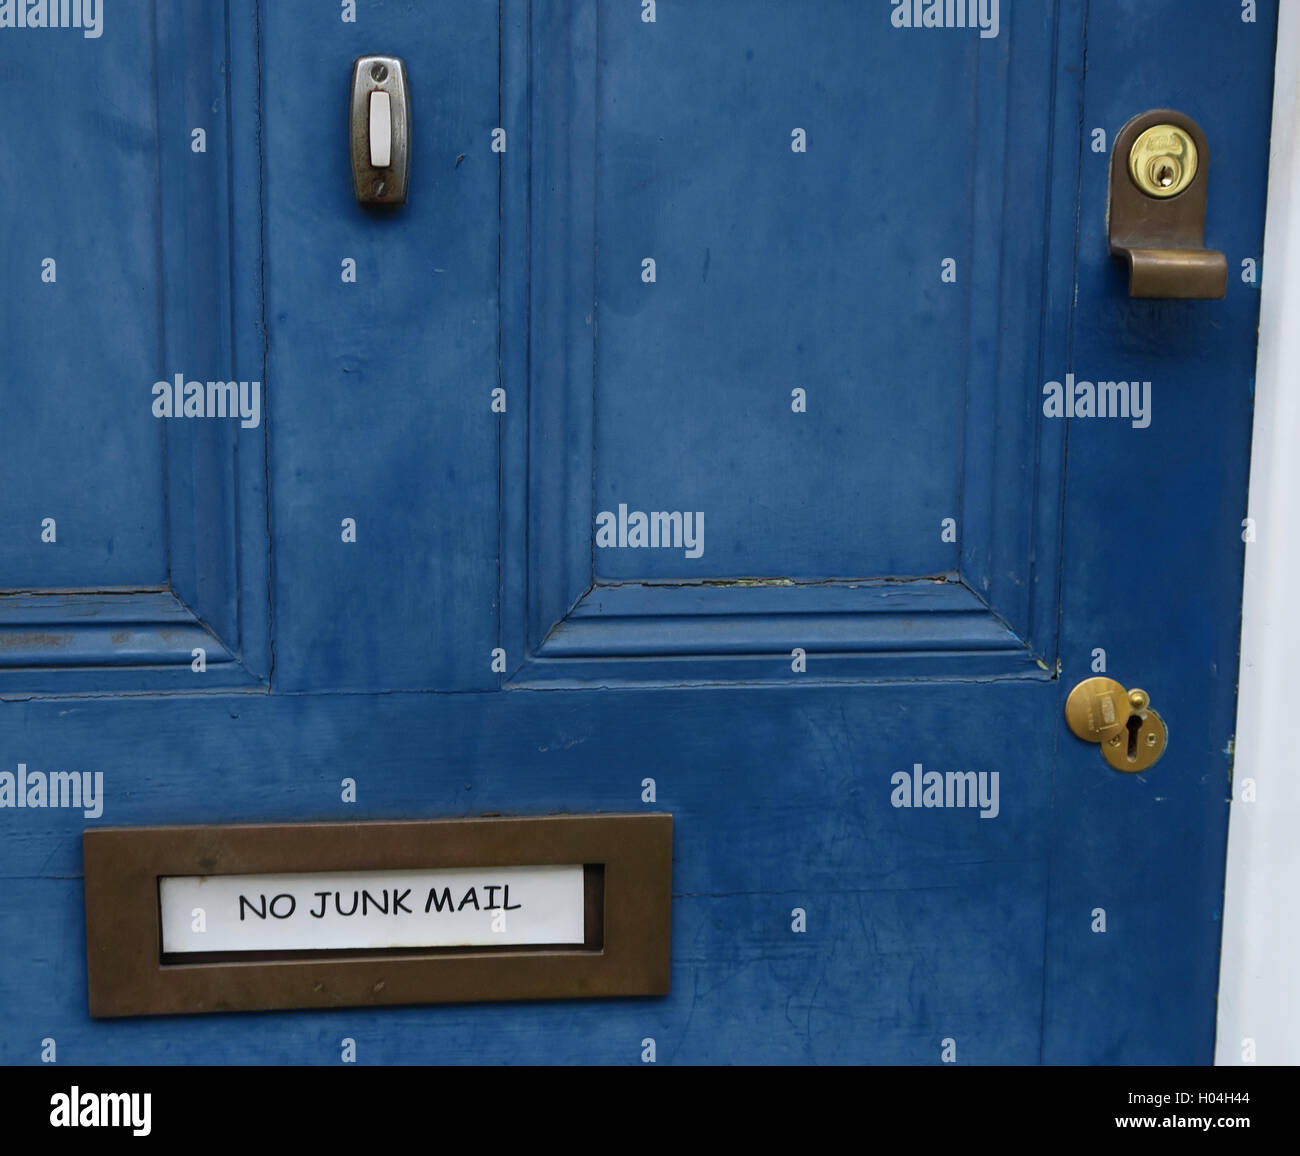 No Direct Junk Mail Please, in my letterbox - Stock Image